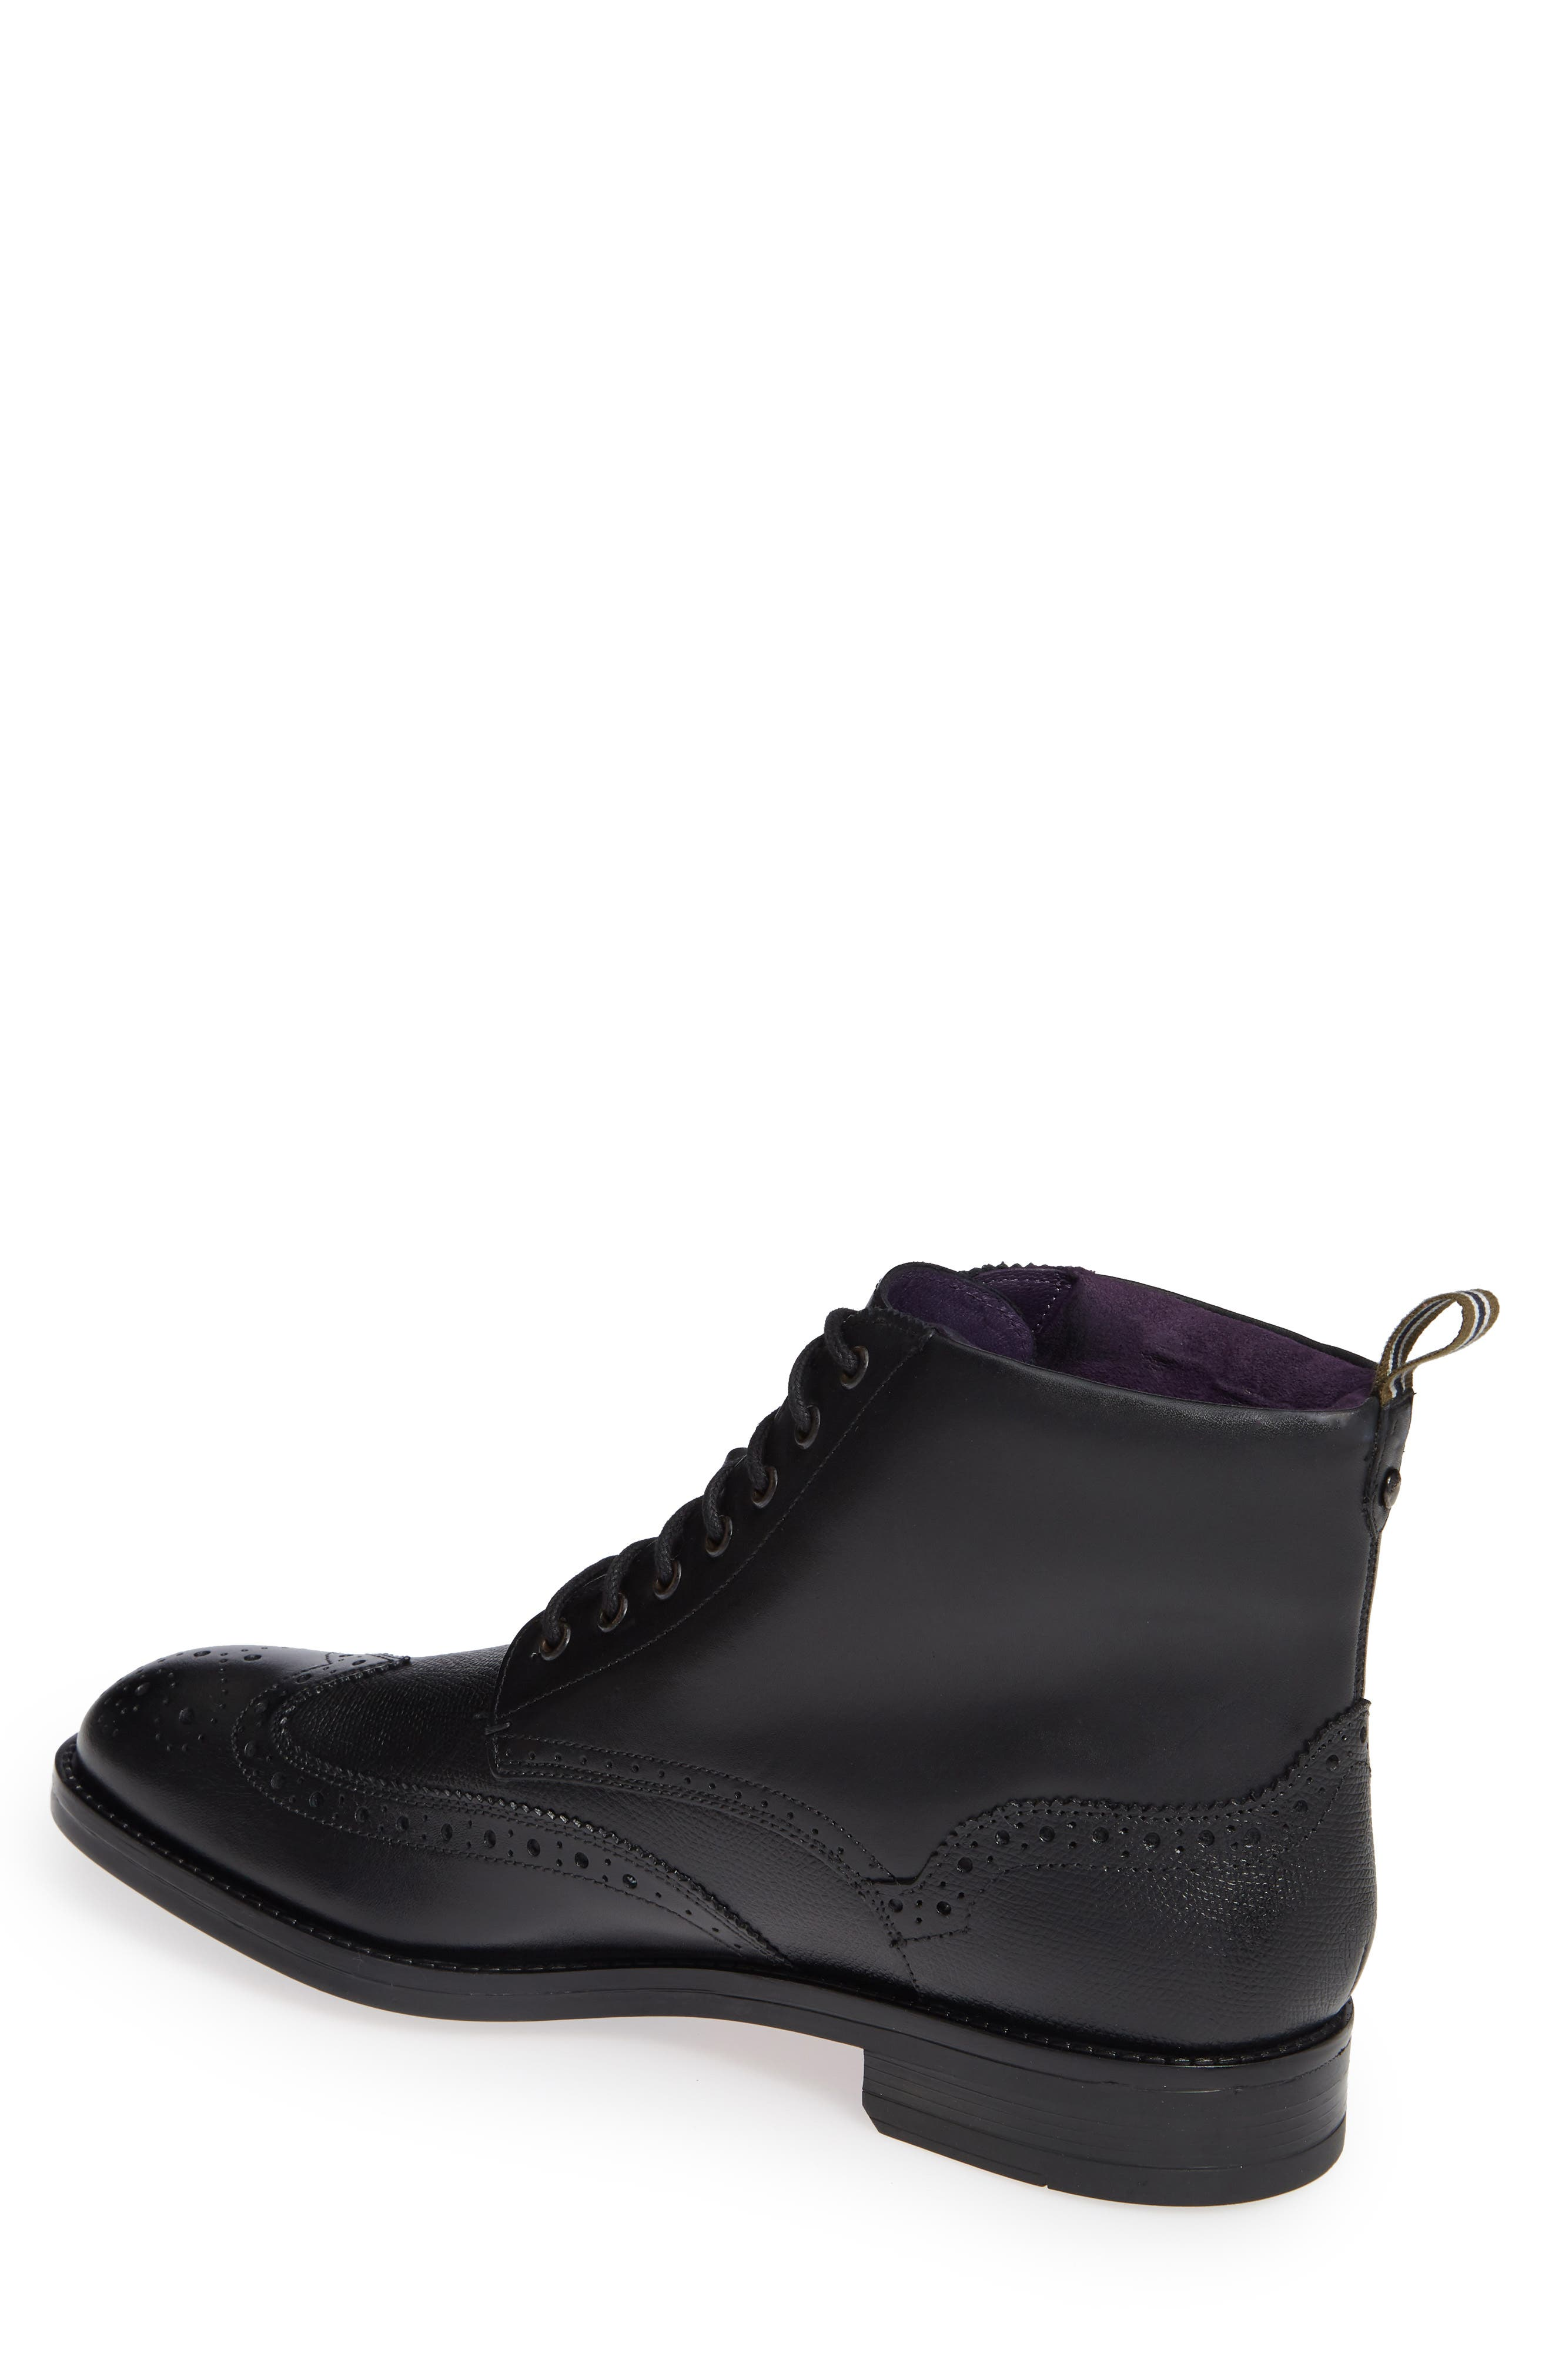 Twrens Wingtip Boot,                             Alternate thumbnail 2, color,                             BLACK LEATHER